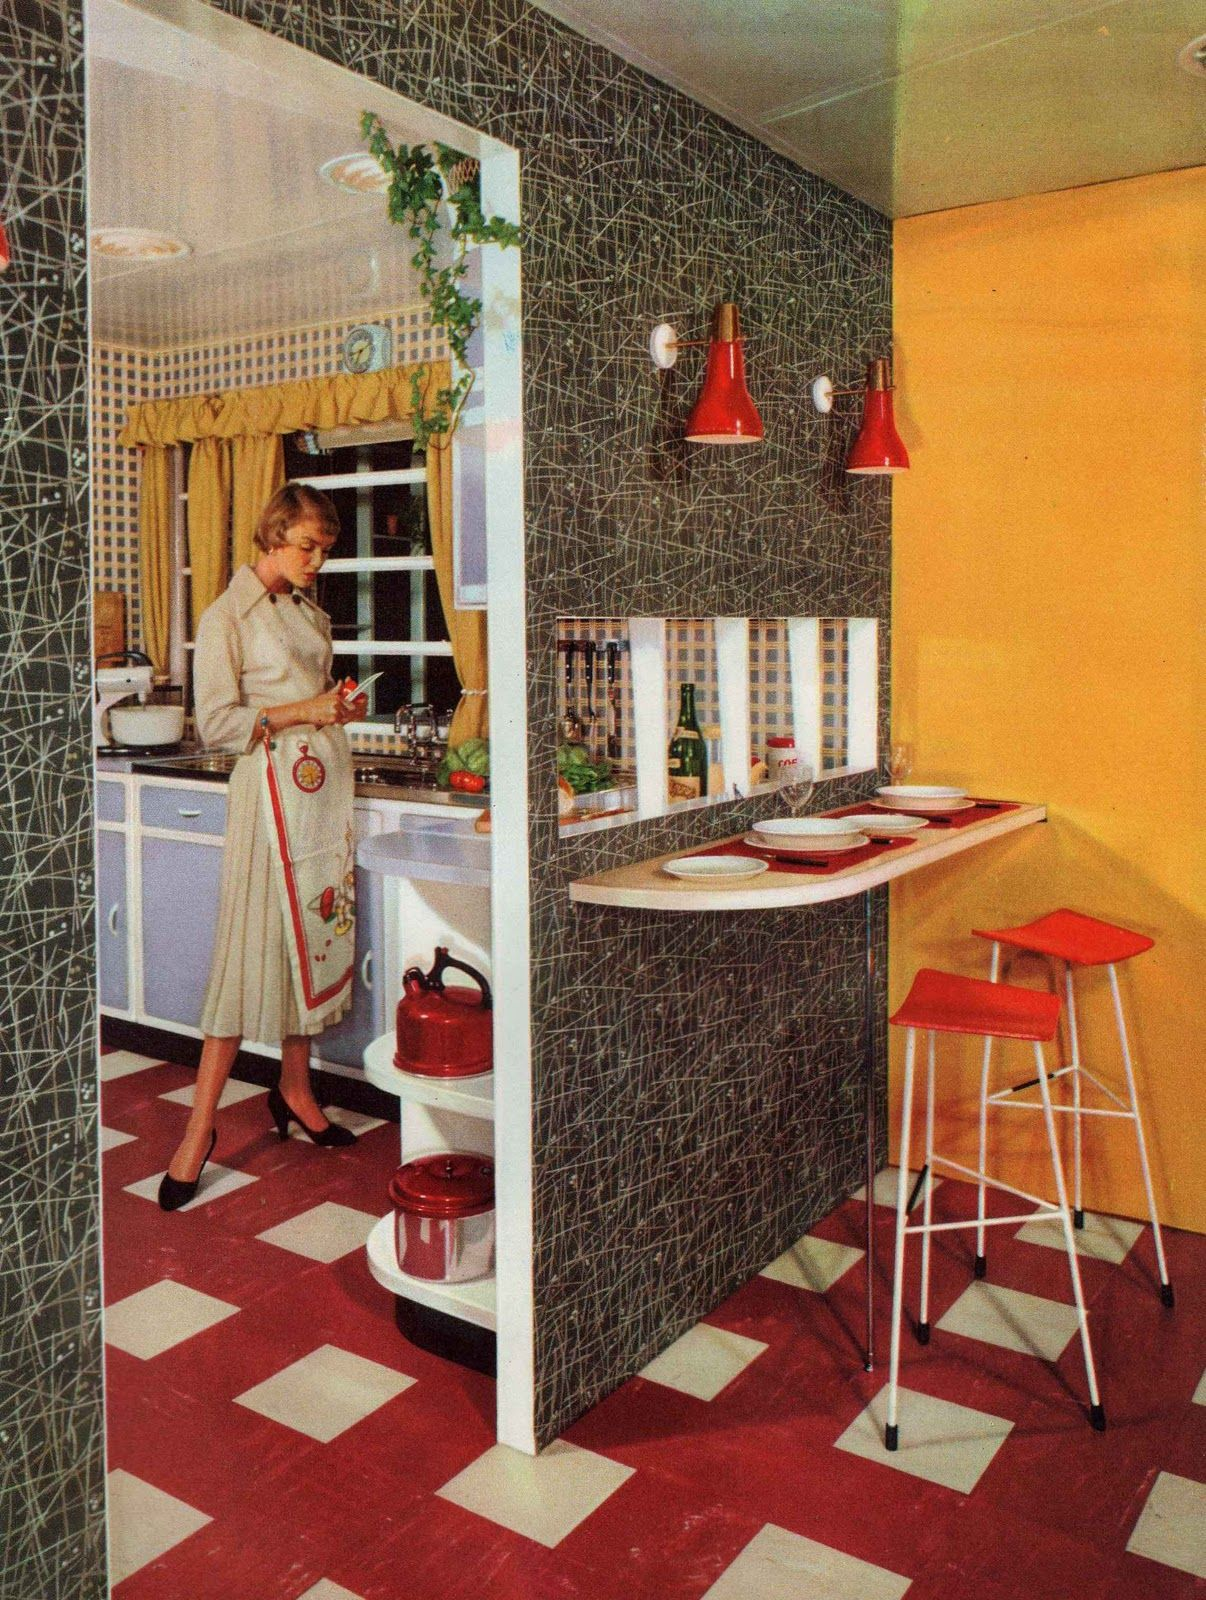 1950s interior - kitchen/breakfast bar - atomic feature wall | Home ...